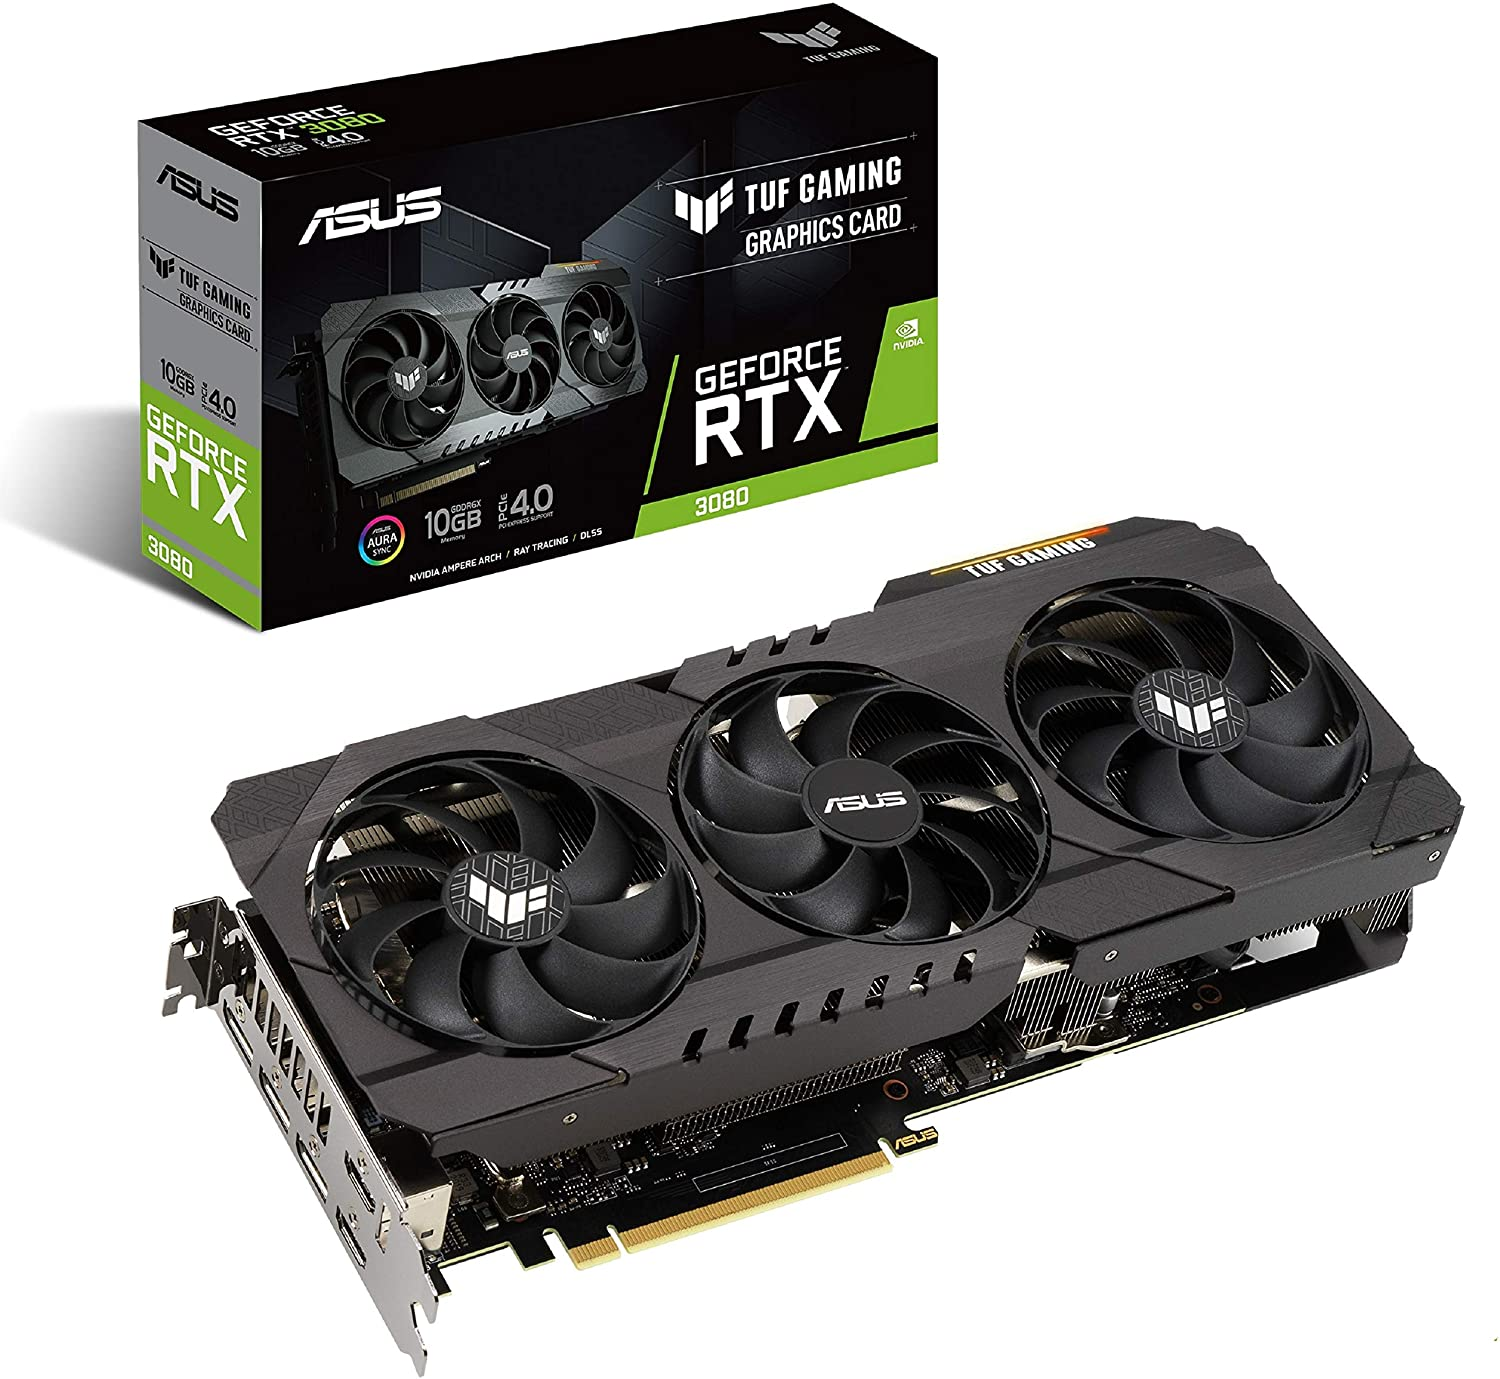 Asus Tuf Gaming Nvidia Geforce Rtx 3080 Graphics Card Carte Graphique